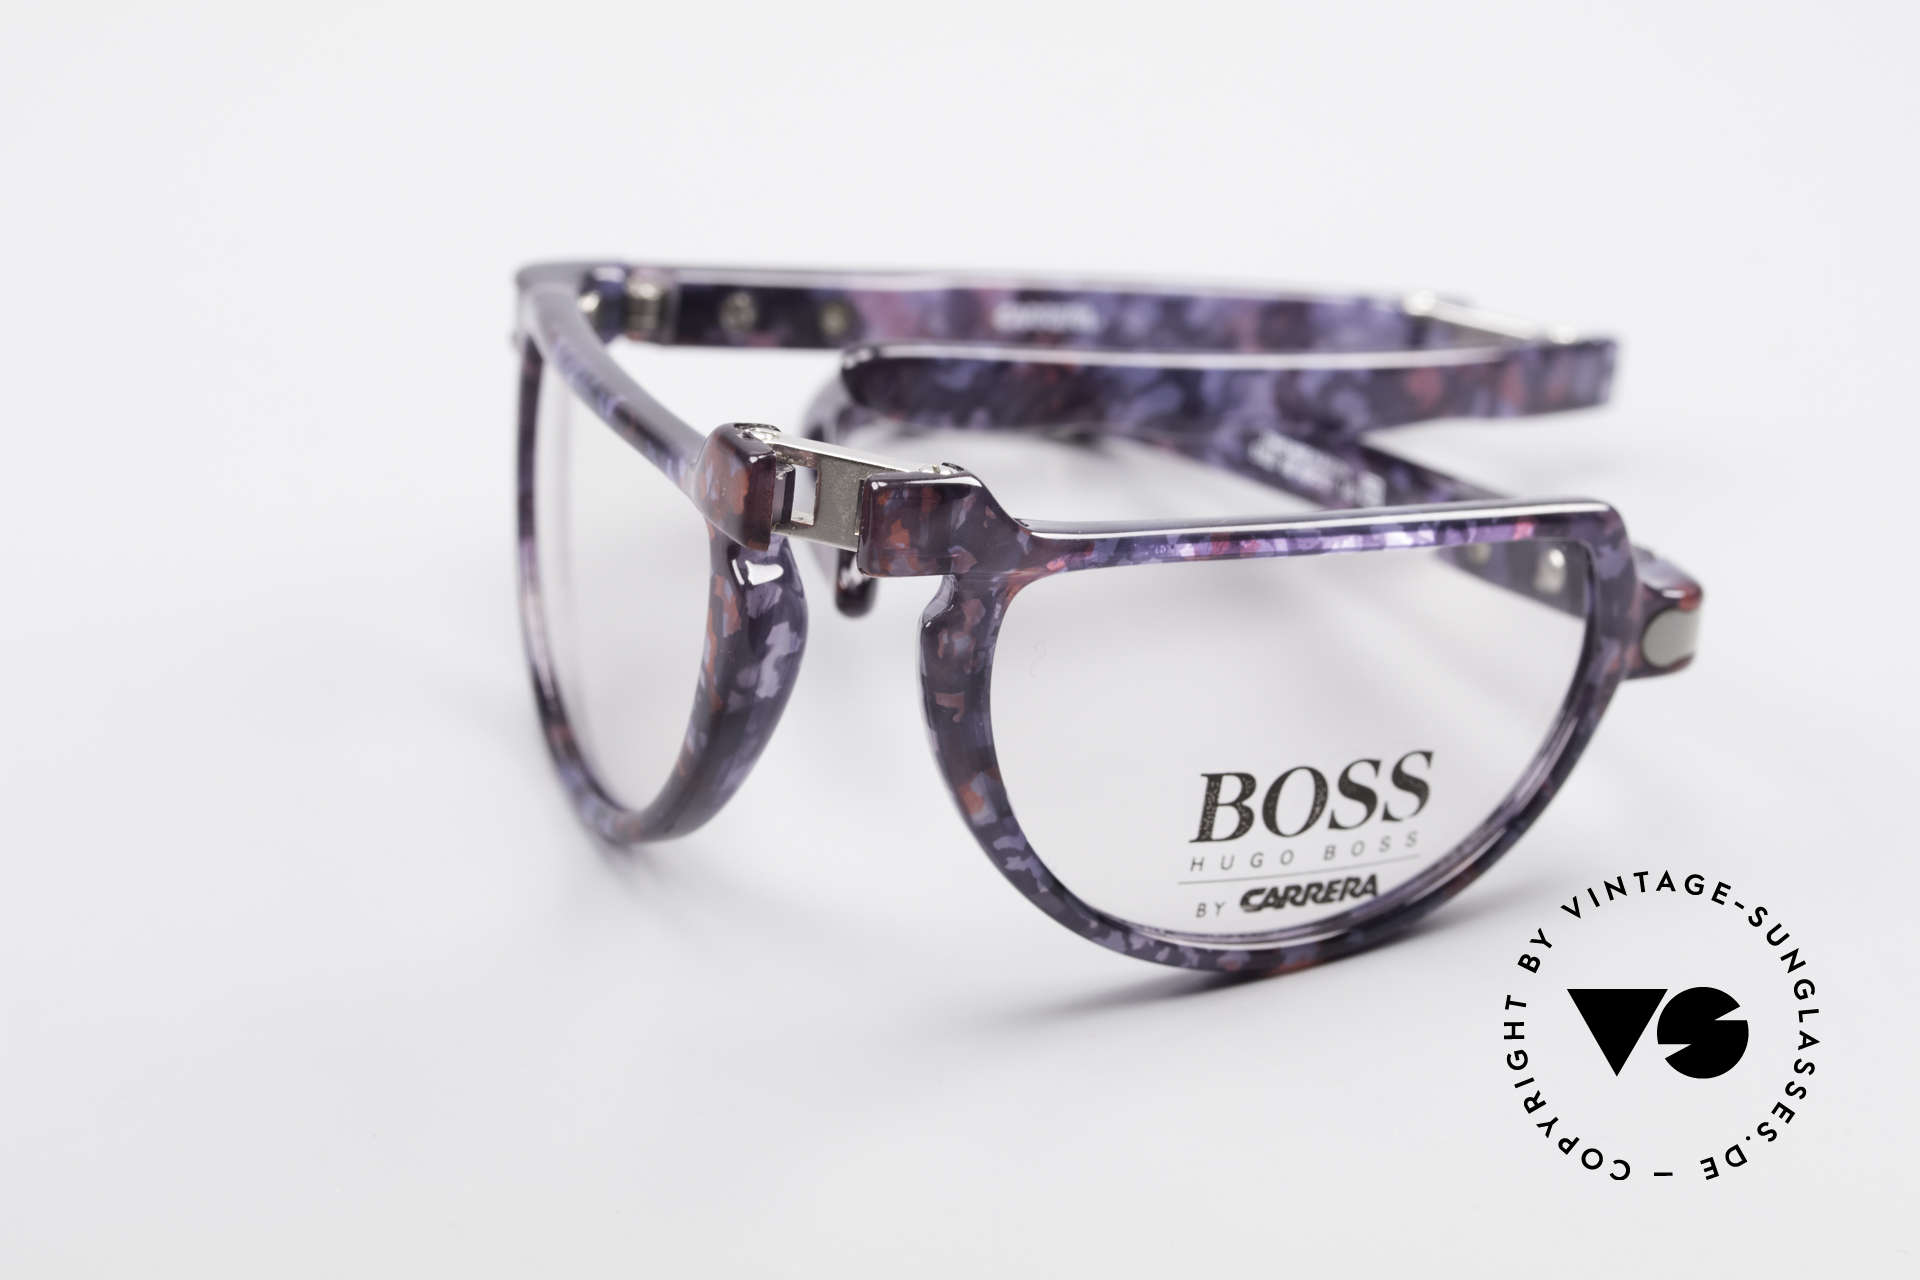 BOSS 5103 Folding Reading Eyeglasses, Size: medium, Made for Men and Women